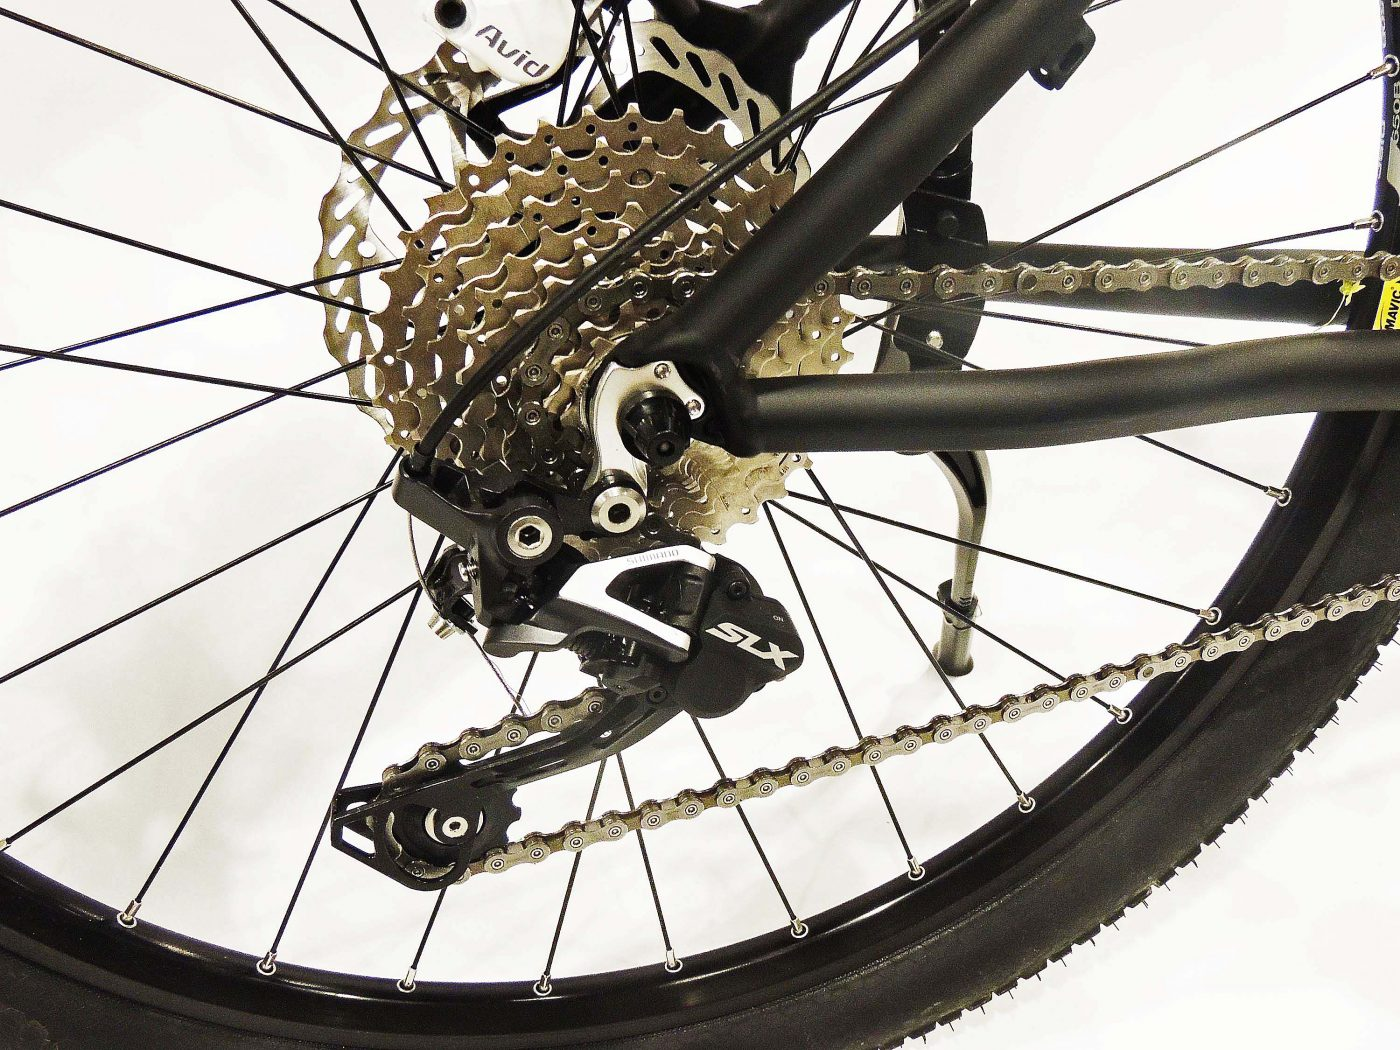 Available Gear Types – Derailleur & Internal